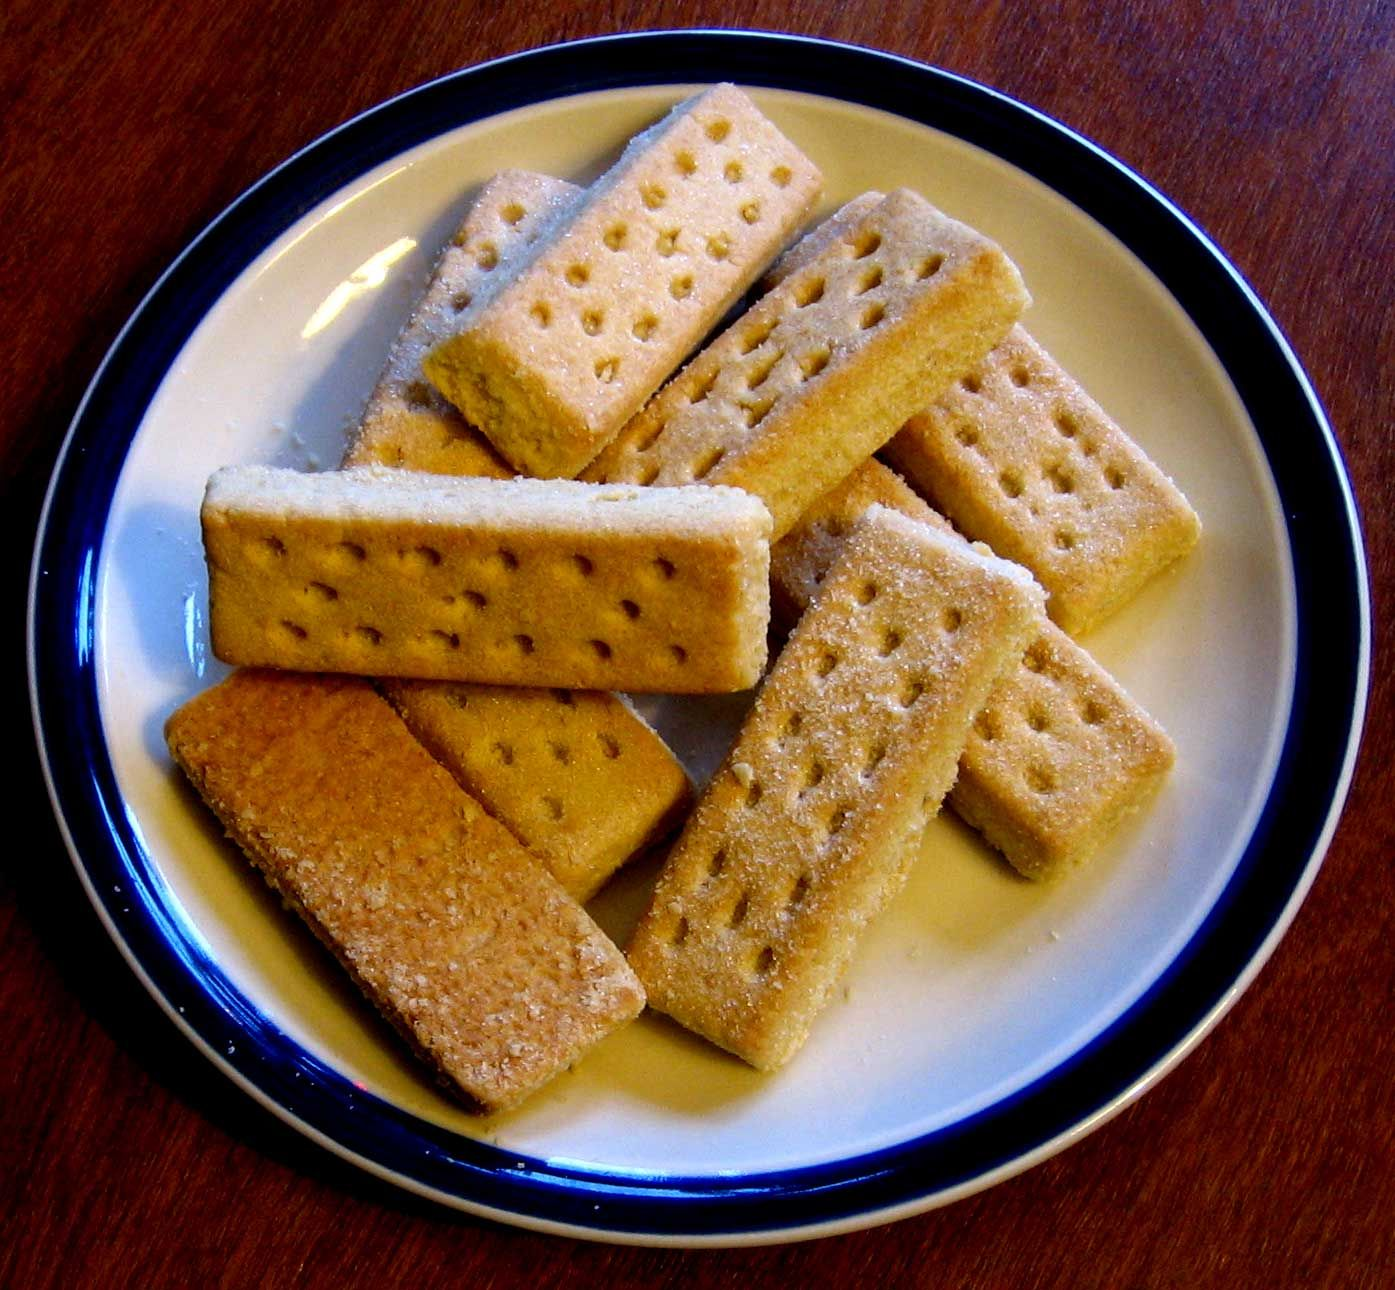 Pictures of shortbread cookies Buttered Rum Butter Cookies - Wicked Good Kitchen